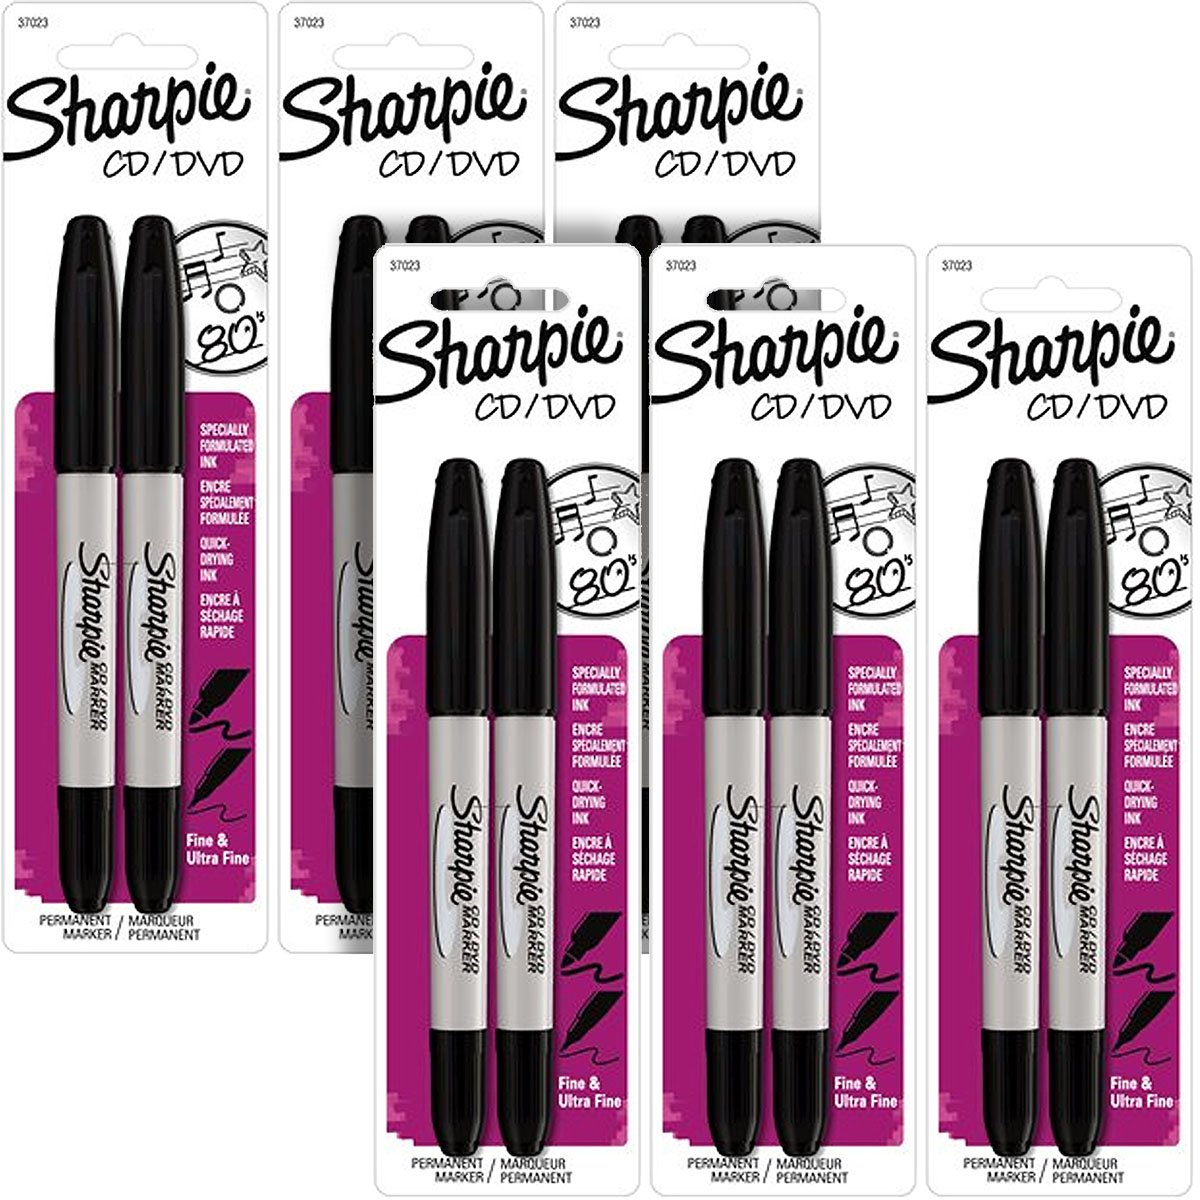 Sharpie CD/DVD Twin-Tip Permanent Markers, Fine/Ultra Fine Black Ink, Pack of 12